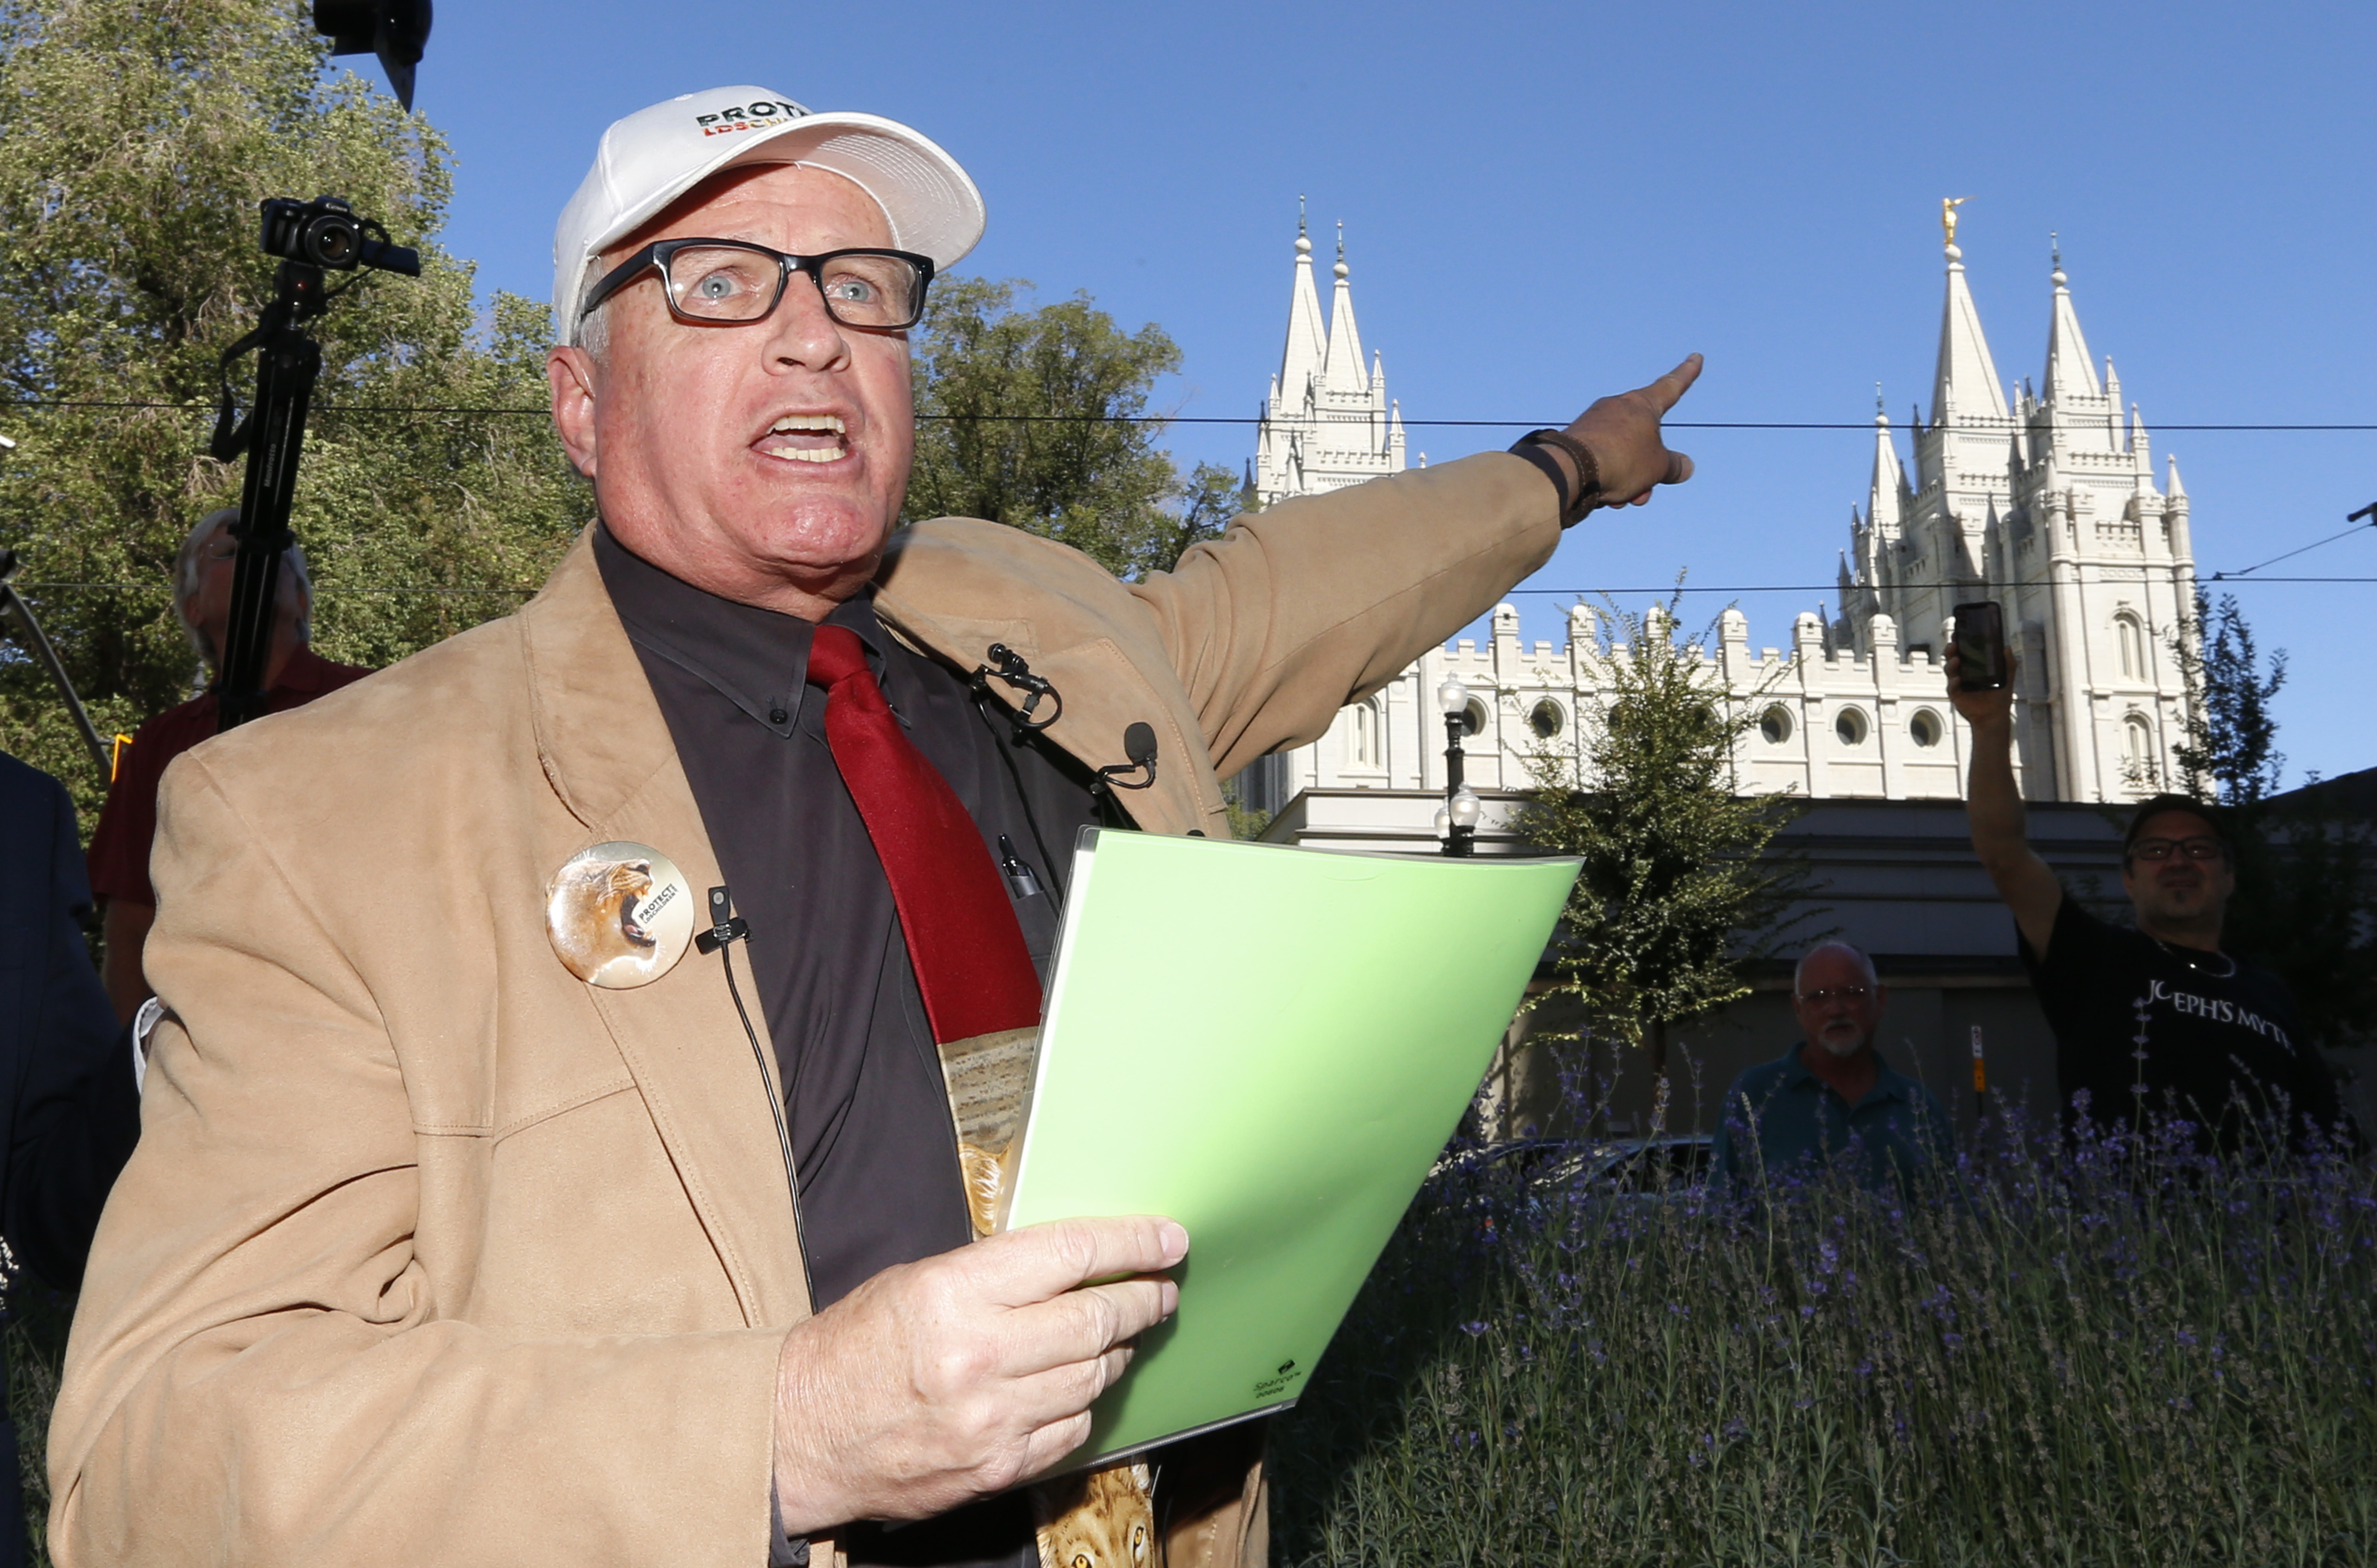 (AP Photo/Rick Bowmer) Sam Young speaks during a news conference Sunday, Sept. 16, 2018, in Salt Lake City. Young, a Mormon man who led a campaign criticizing the church's practice of allowing closed-door, one-on-one interviews of youths by lay leaders, has been kicked out of the faith. Young read a verdict letter for the first time Sunday that had been delivered to him following an earlier disciplinary hearing with local church leaders in Houston.